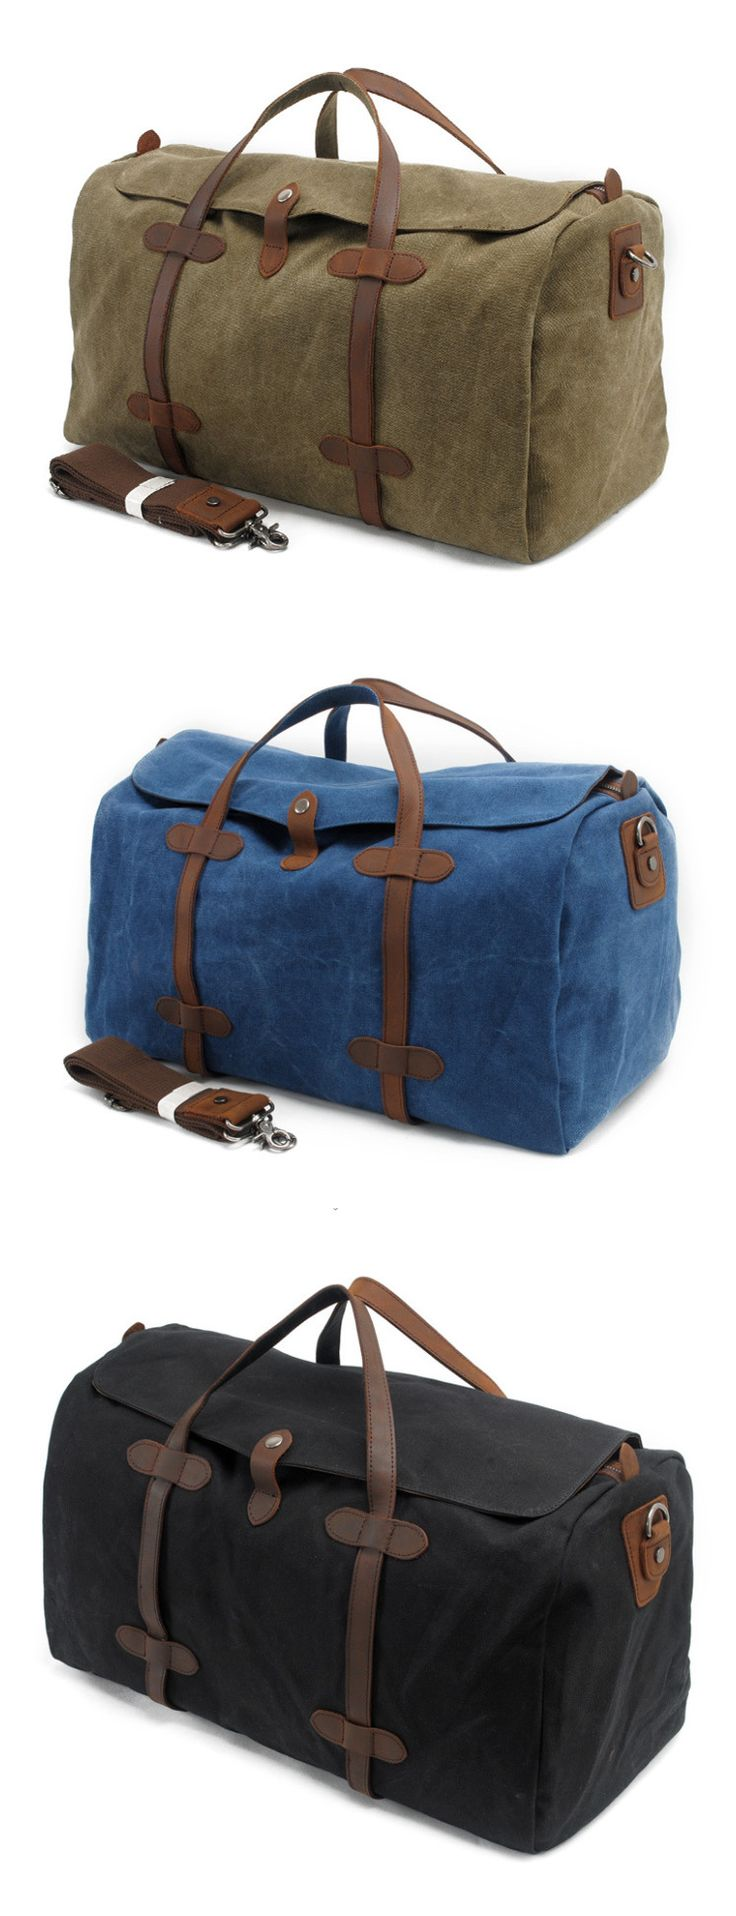 Waxed Canvas Travel Bag Duffle Bag Holdall with Leather Trim Features: • Fabric Lining • Inside zipper pocket • It can hold a 17'' laptop, iPad, A4 document files, magazines, etc. ********************